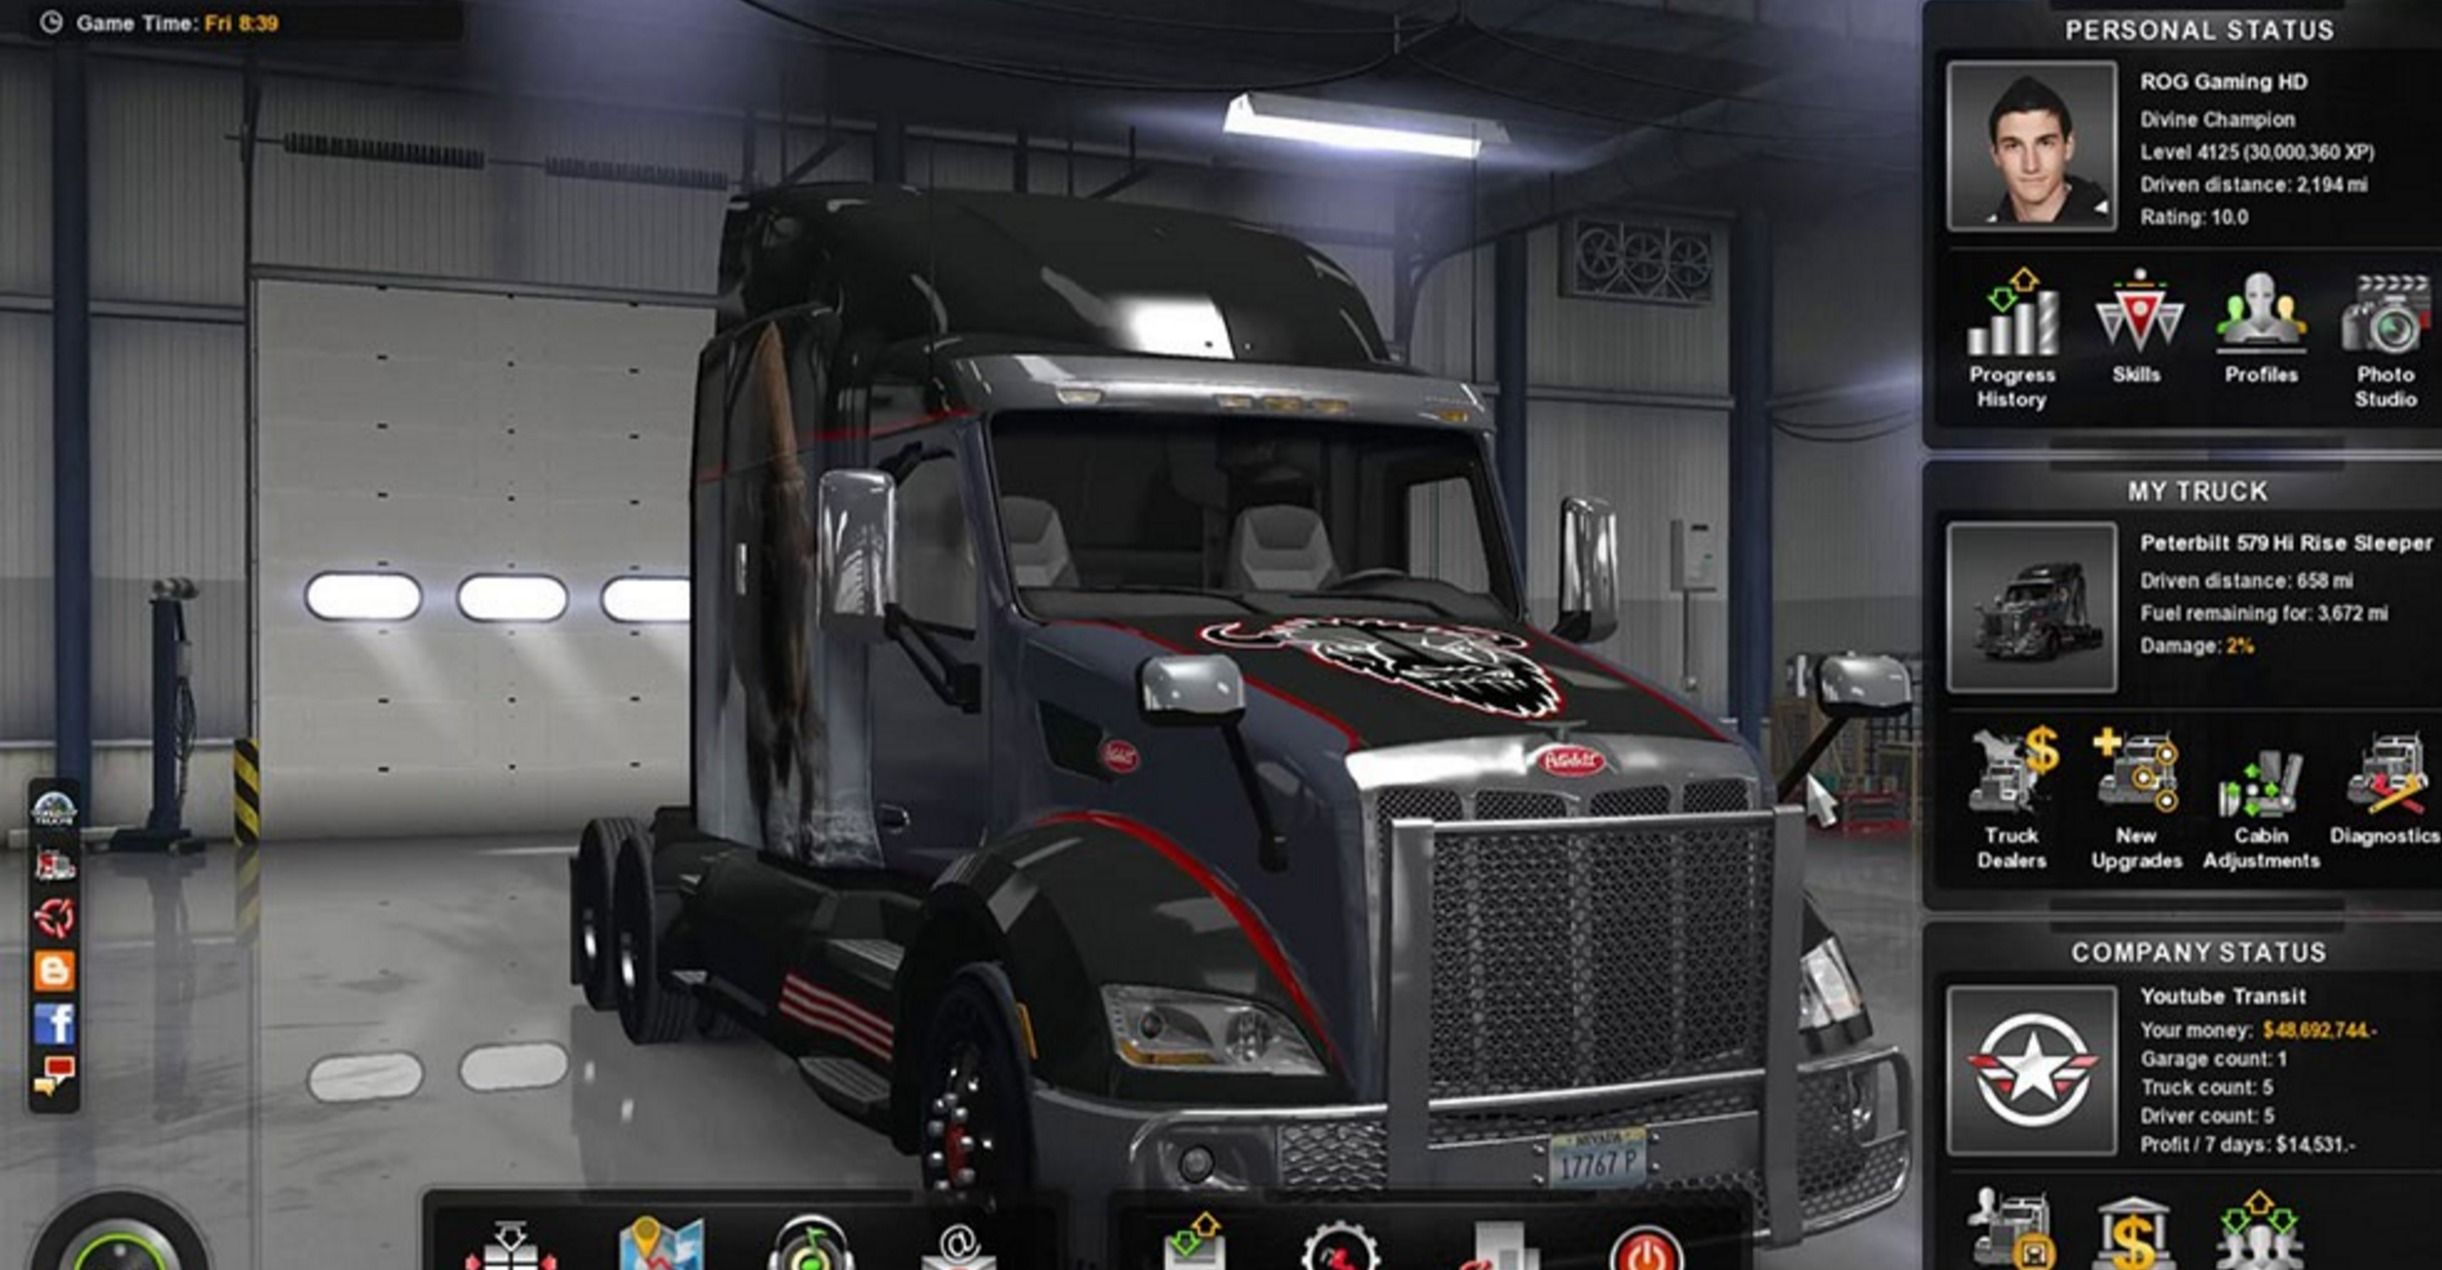 Save Game Level 4125 48 692 744 Mod American Truck Simulator Mod Ats Mod American Truck Simulator Mod Trucks